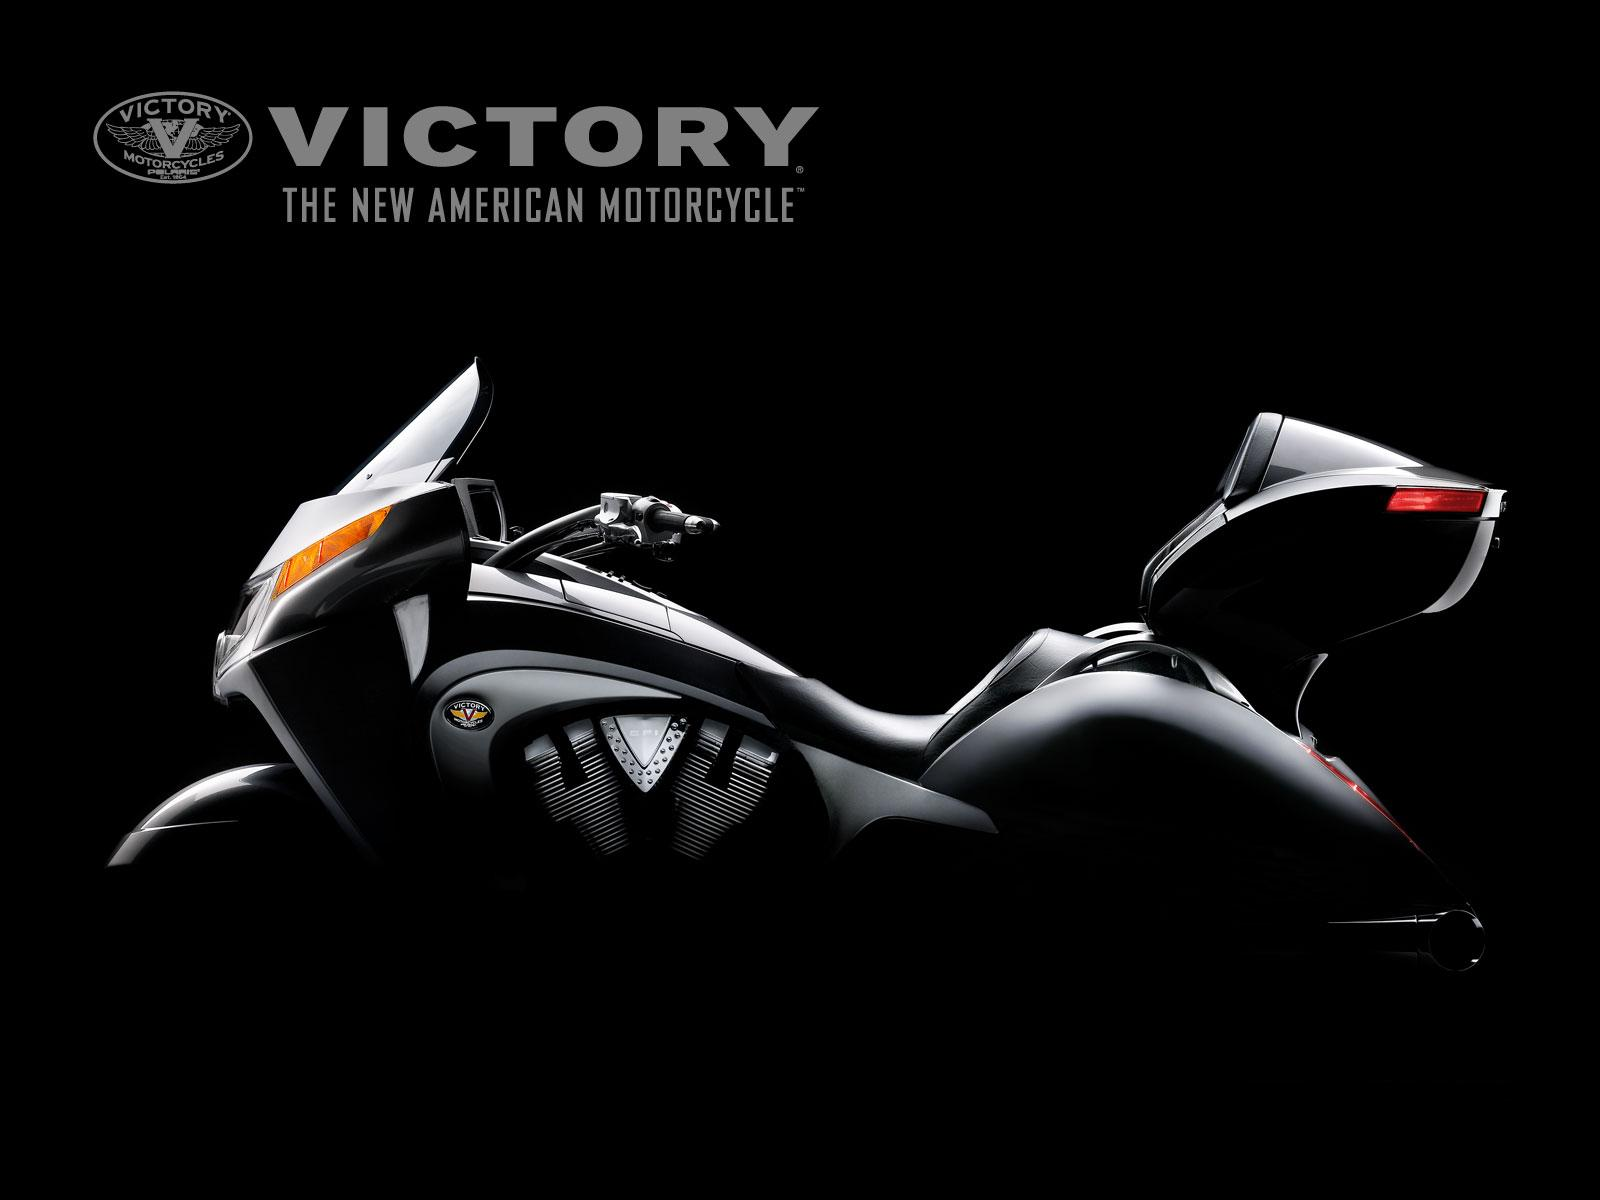 Victory Motorcycle Photo 4 BestePics 1600x1200